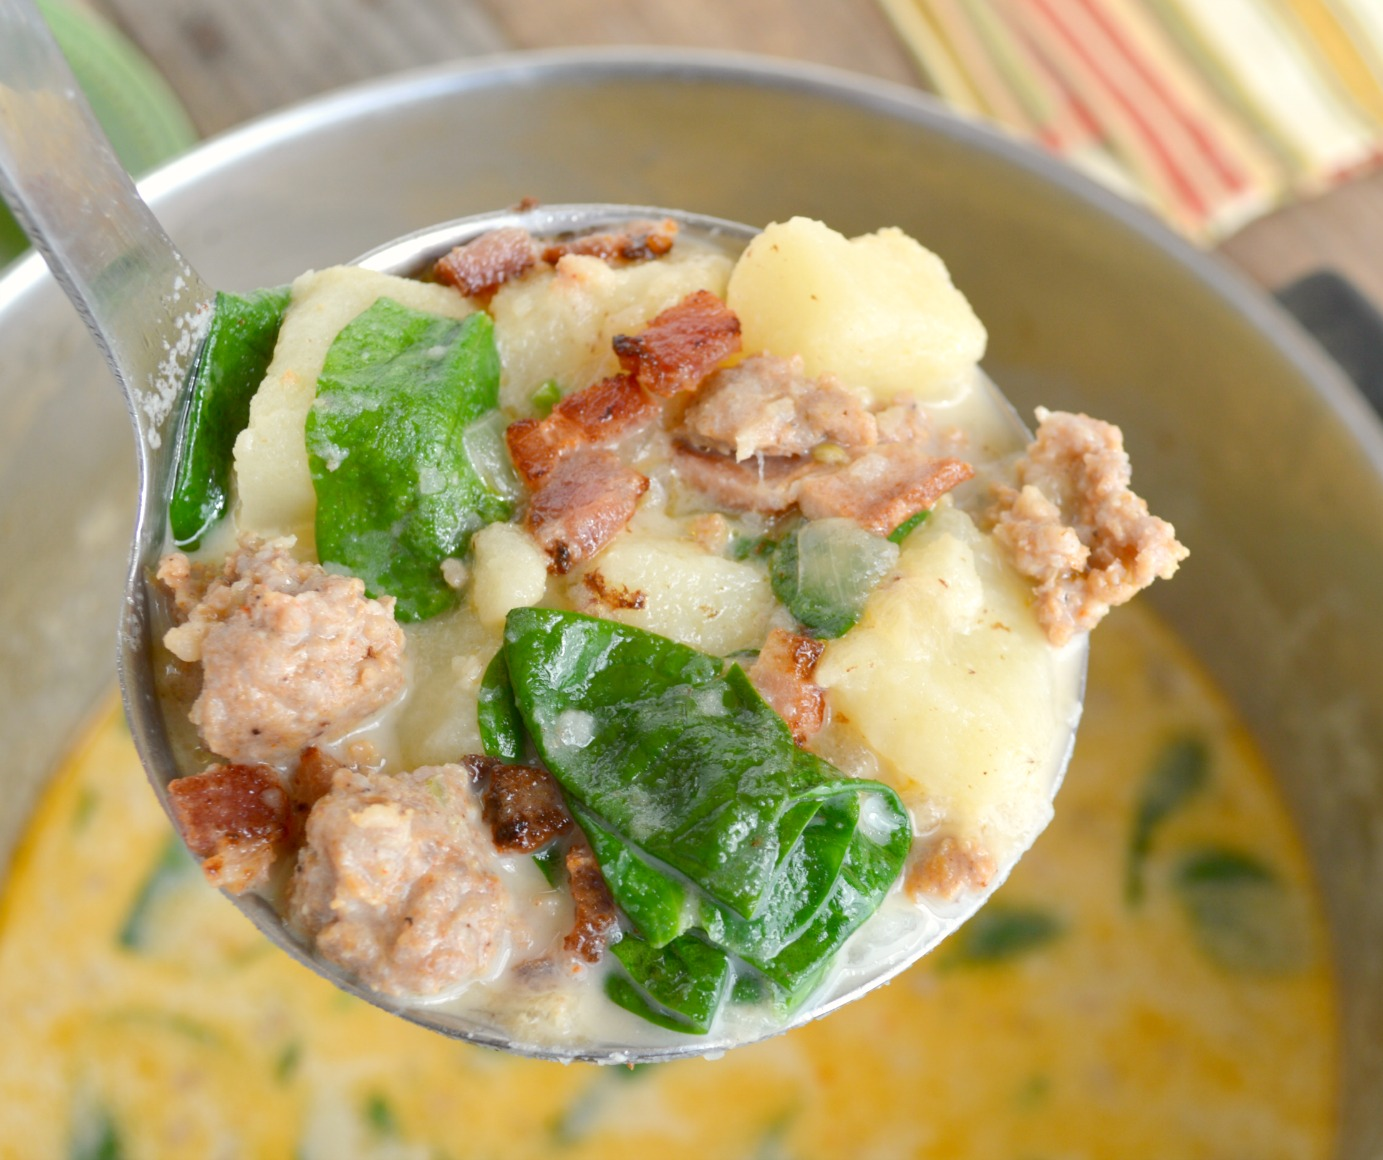 This Zuppa Toscana recipe has even more of the good stuff than the original.